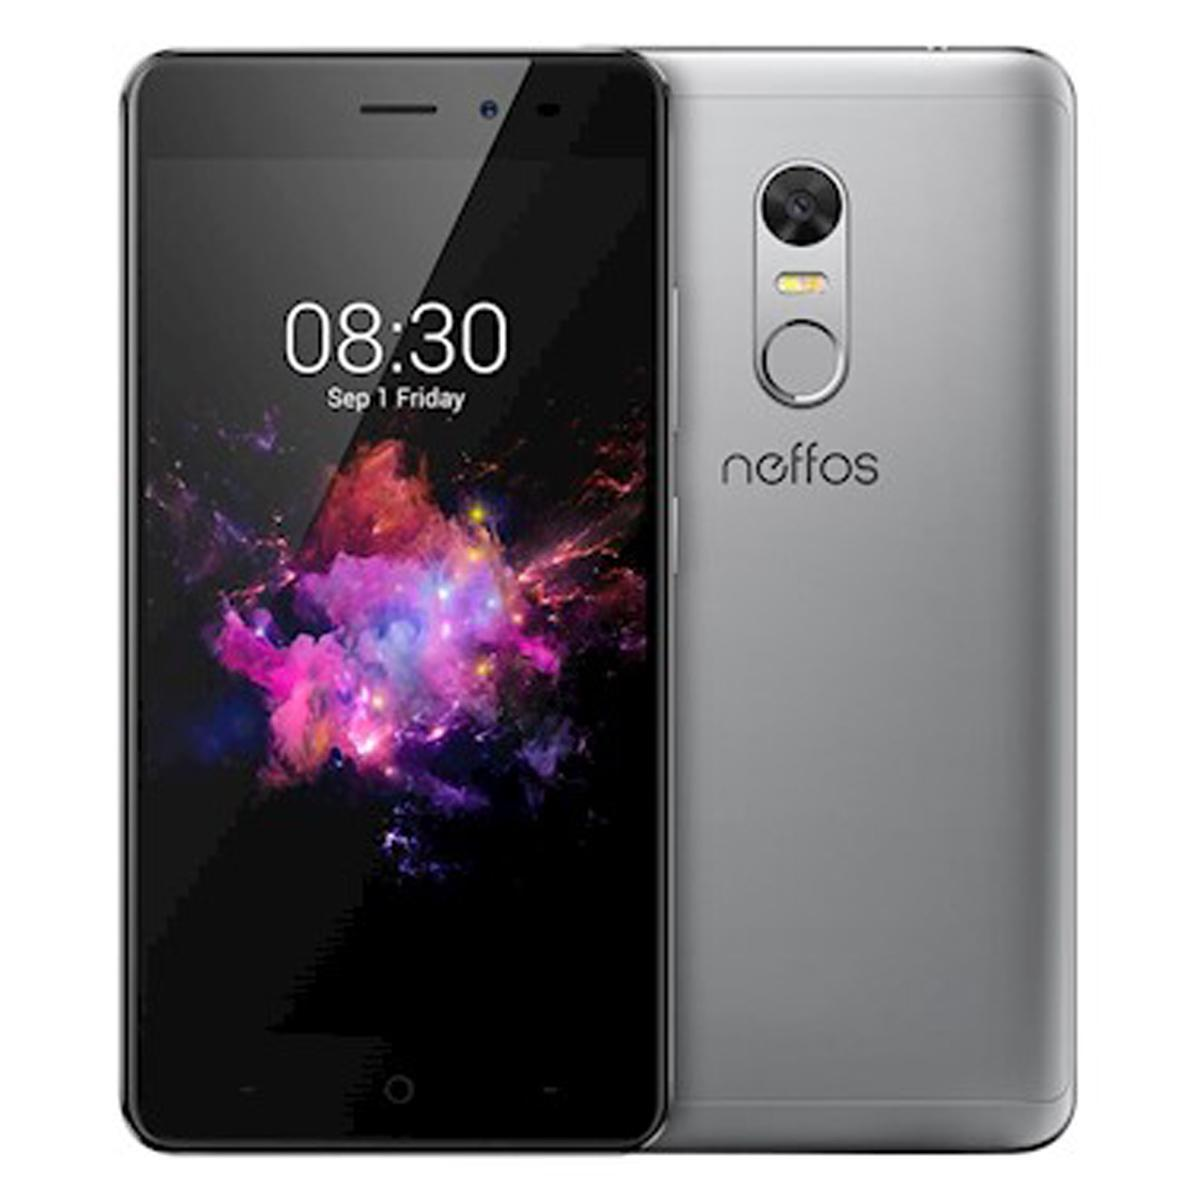 TP Link Neffos X1 3GB/32GB HANDSET + FREE BACK COVER. BRAND NEW SEALED SET WITH 2 YEAR LOCAL WARRANTY + 1 YEAR SCREEN CRACK PROTECTION